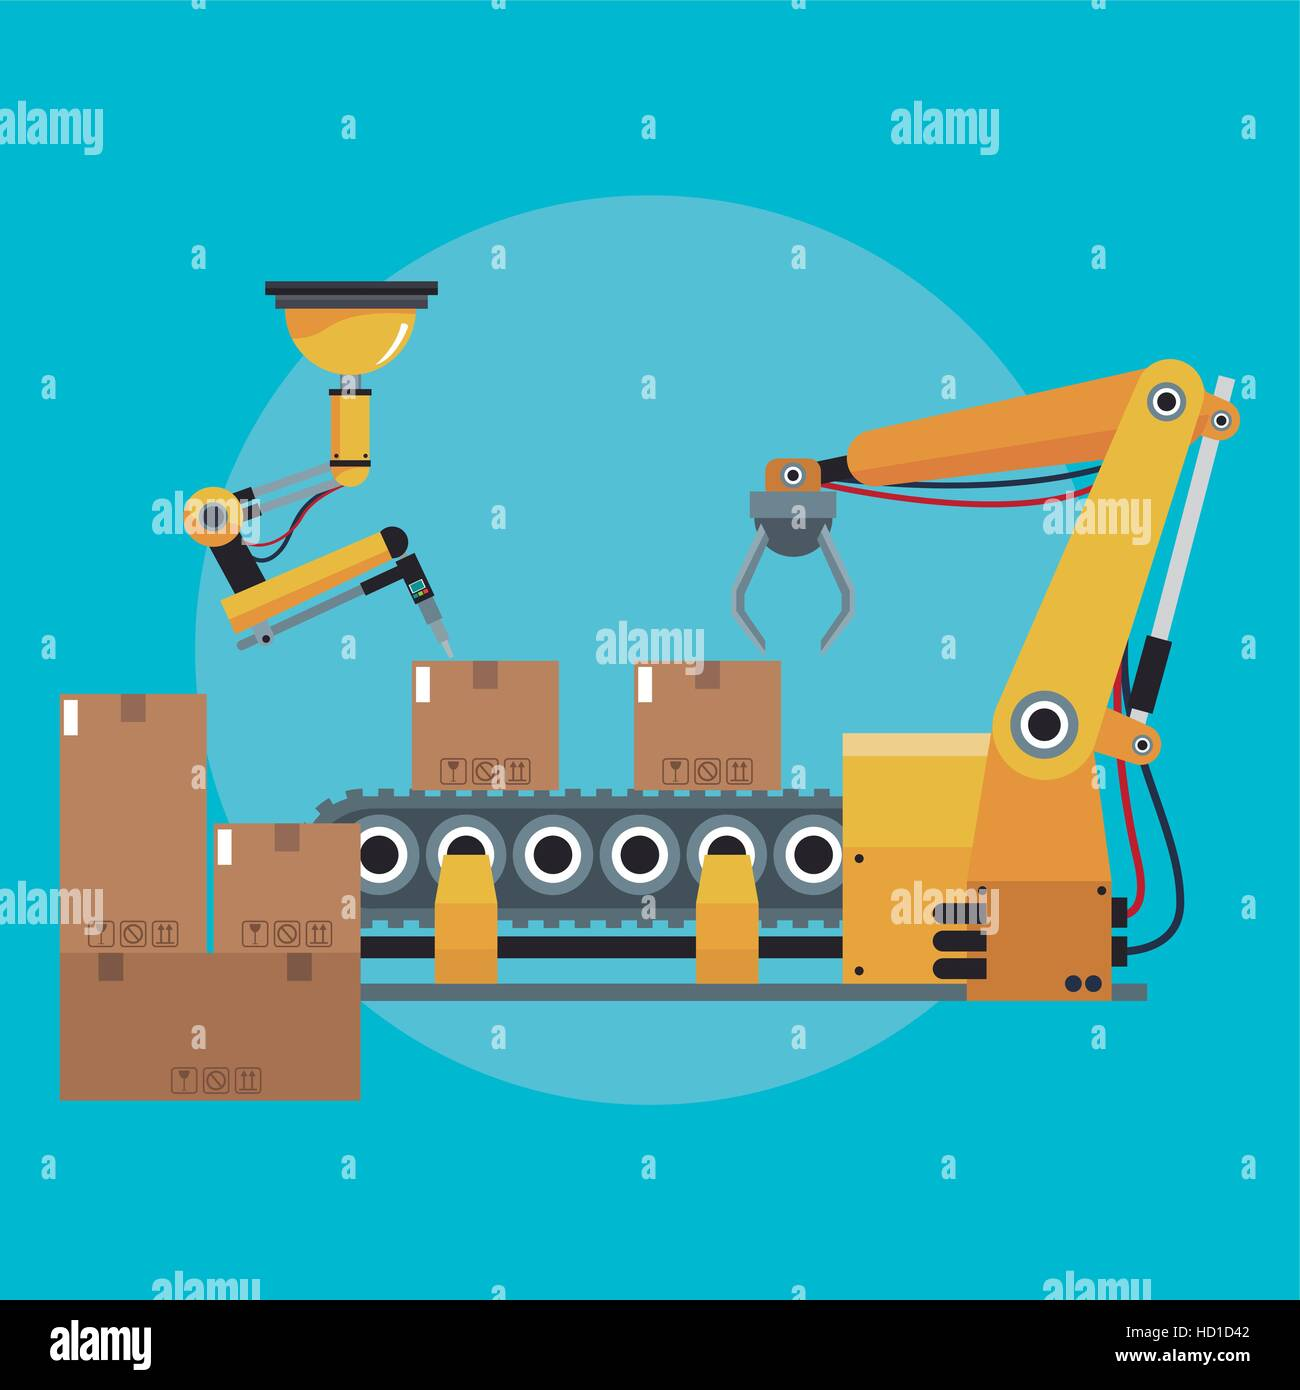 packing box automated robotic production line - Stock Image